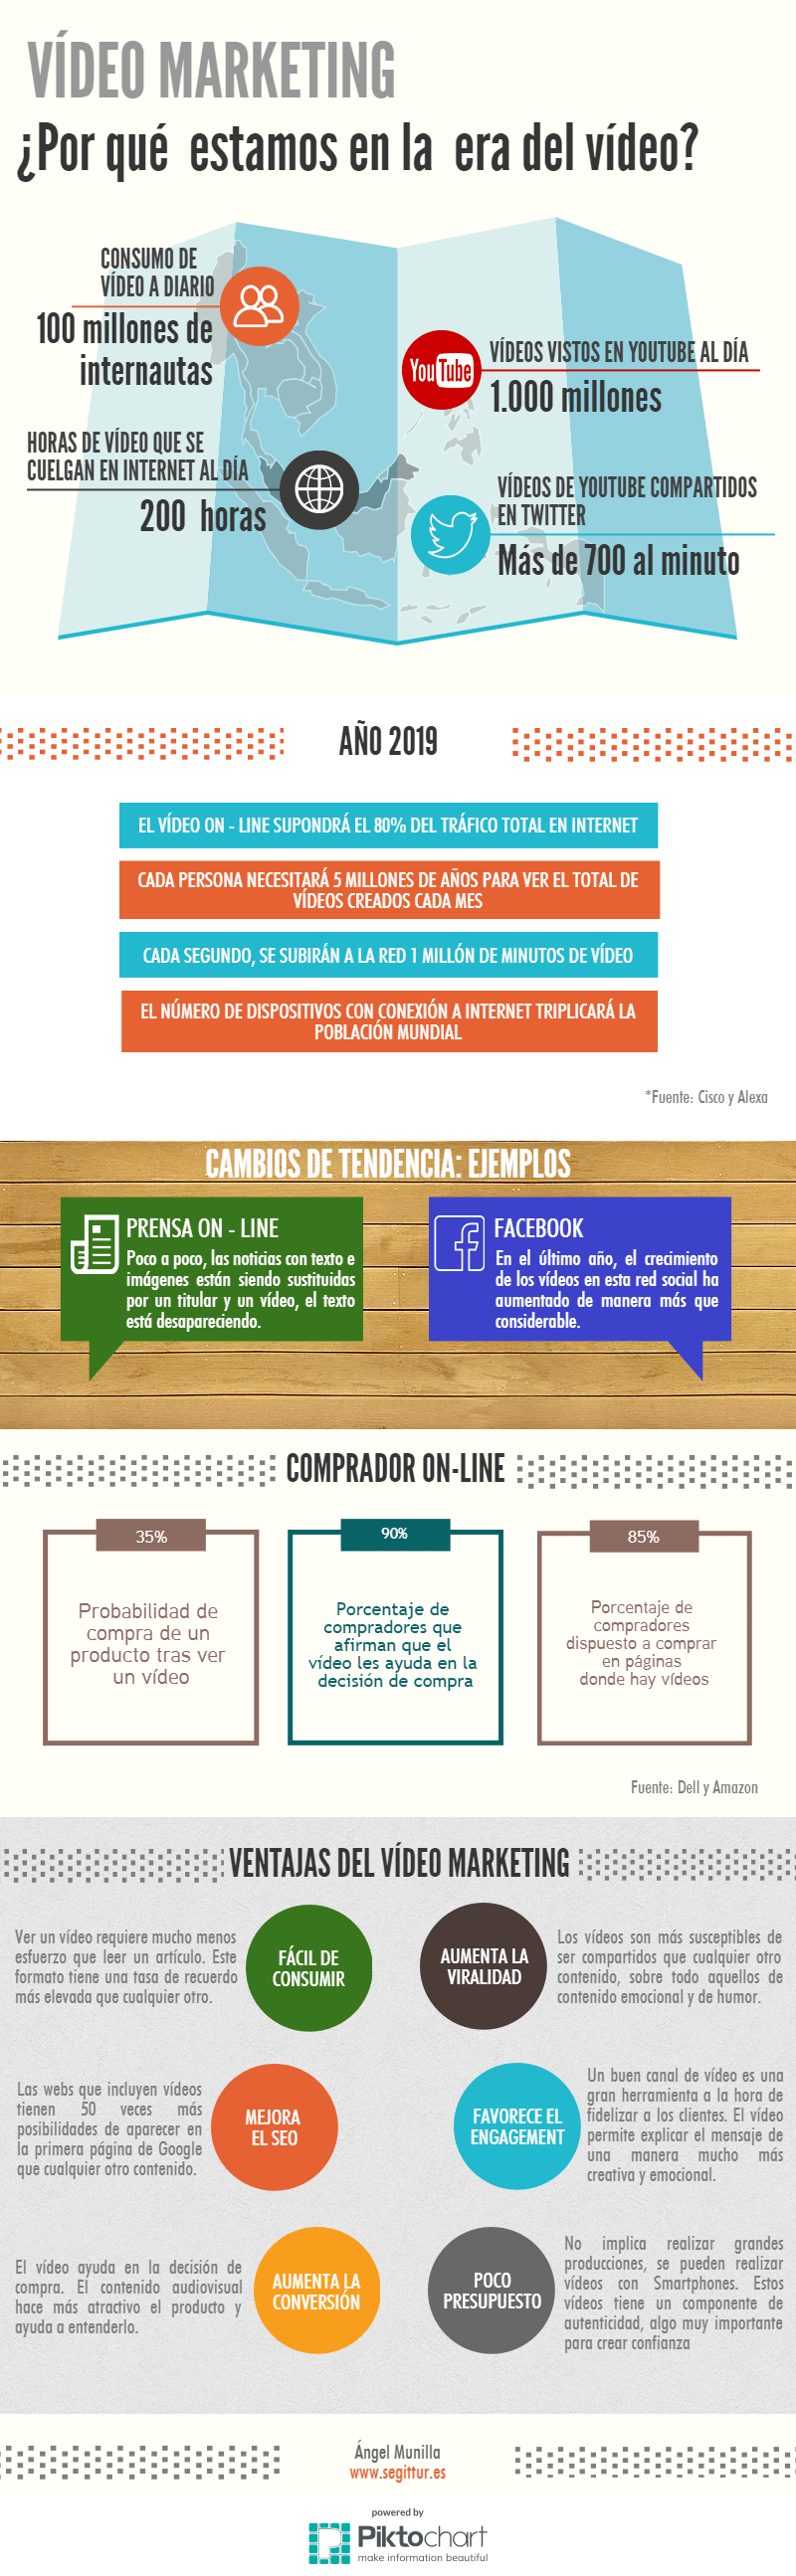 videomarketing_infografia